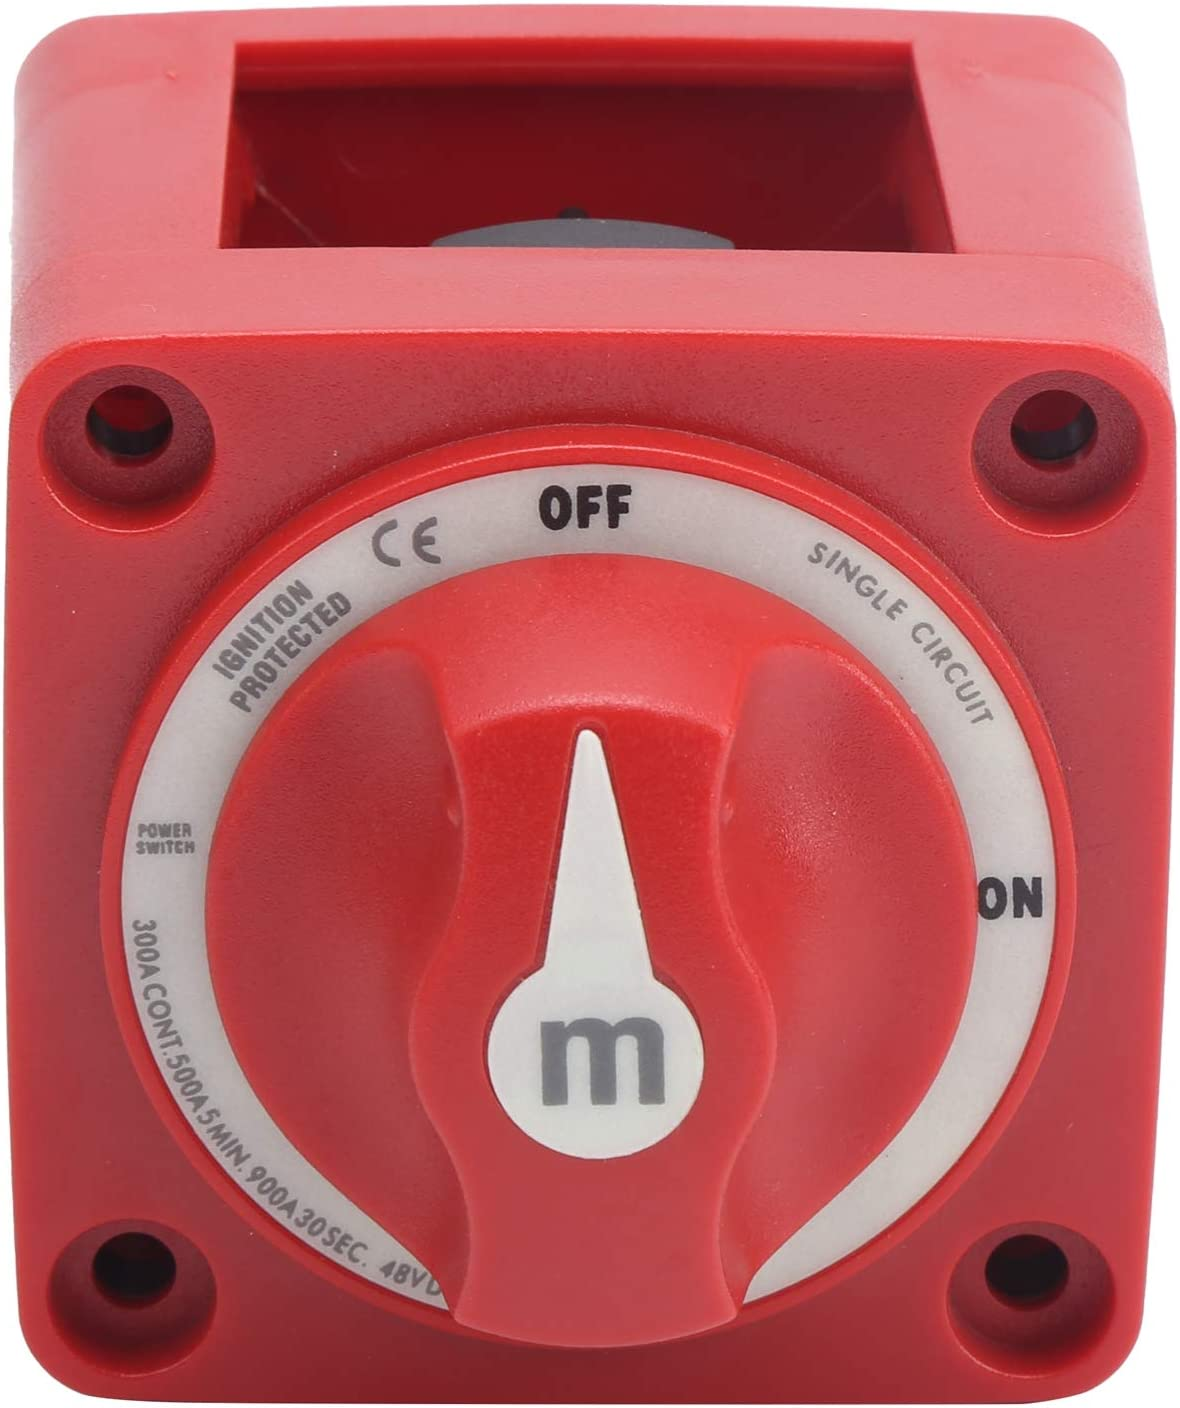 Fockety Marine Battery Switch M5 DC 48V On Current 300A High Max 45% OFF Of Cheap sale